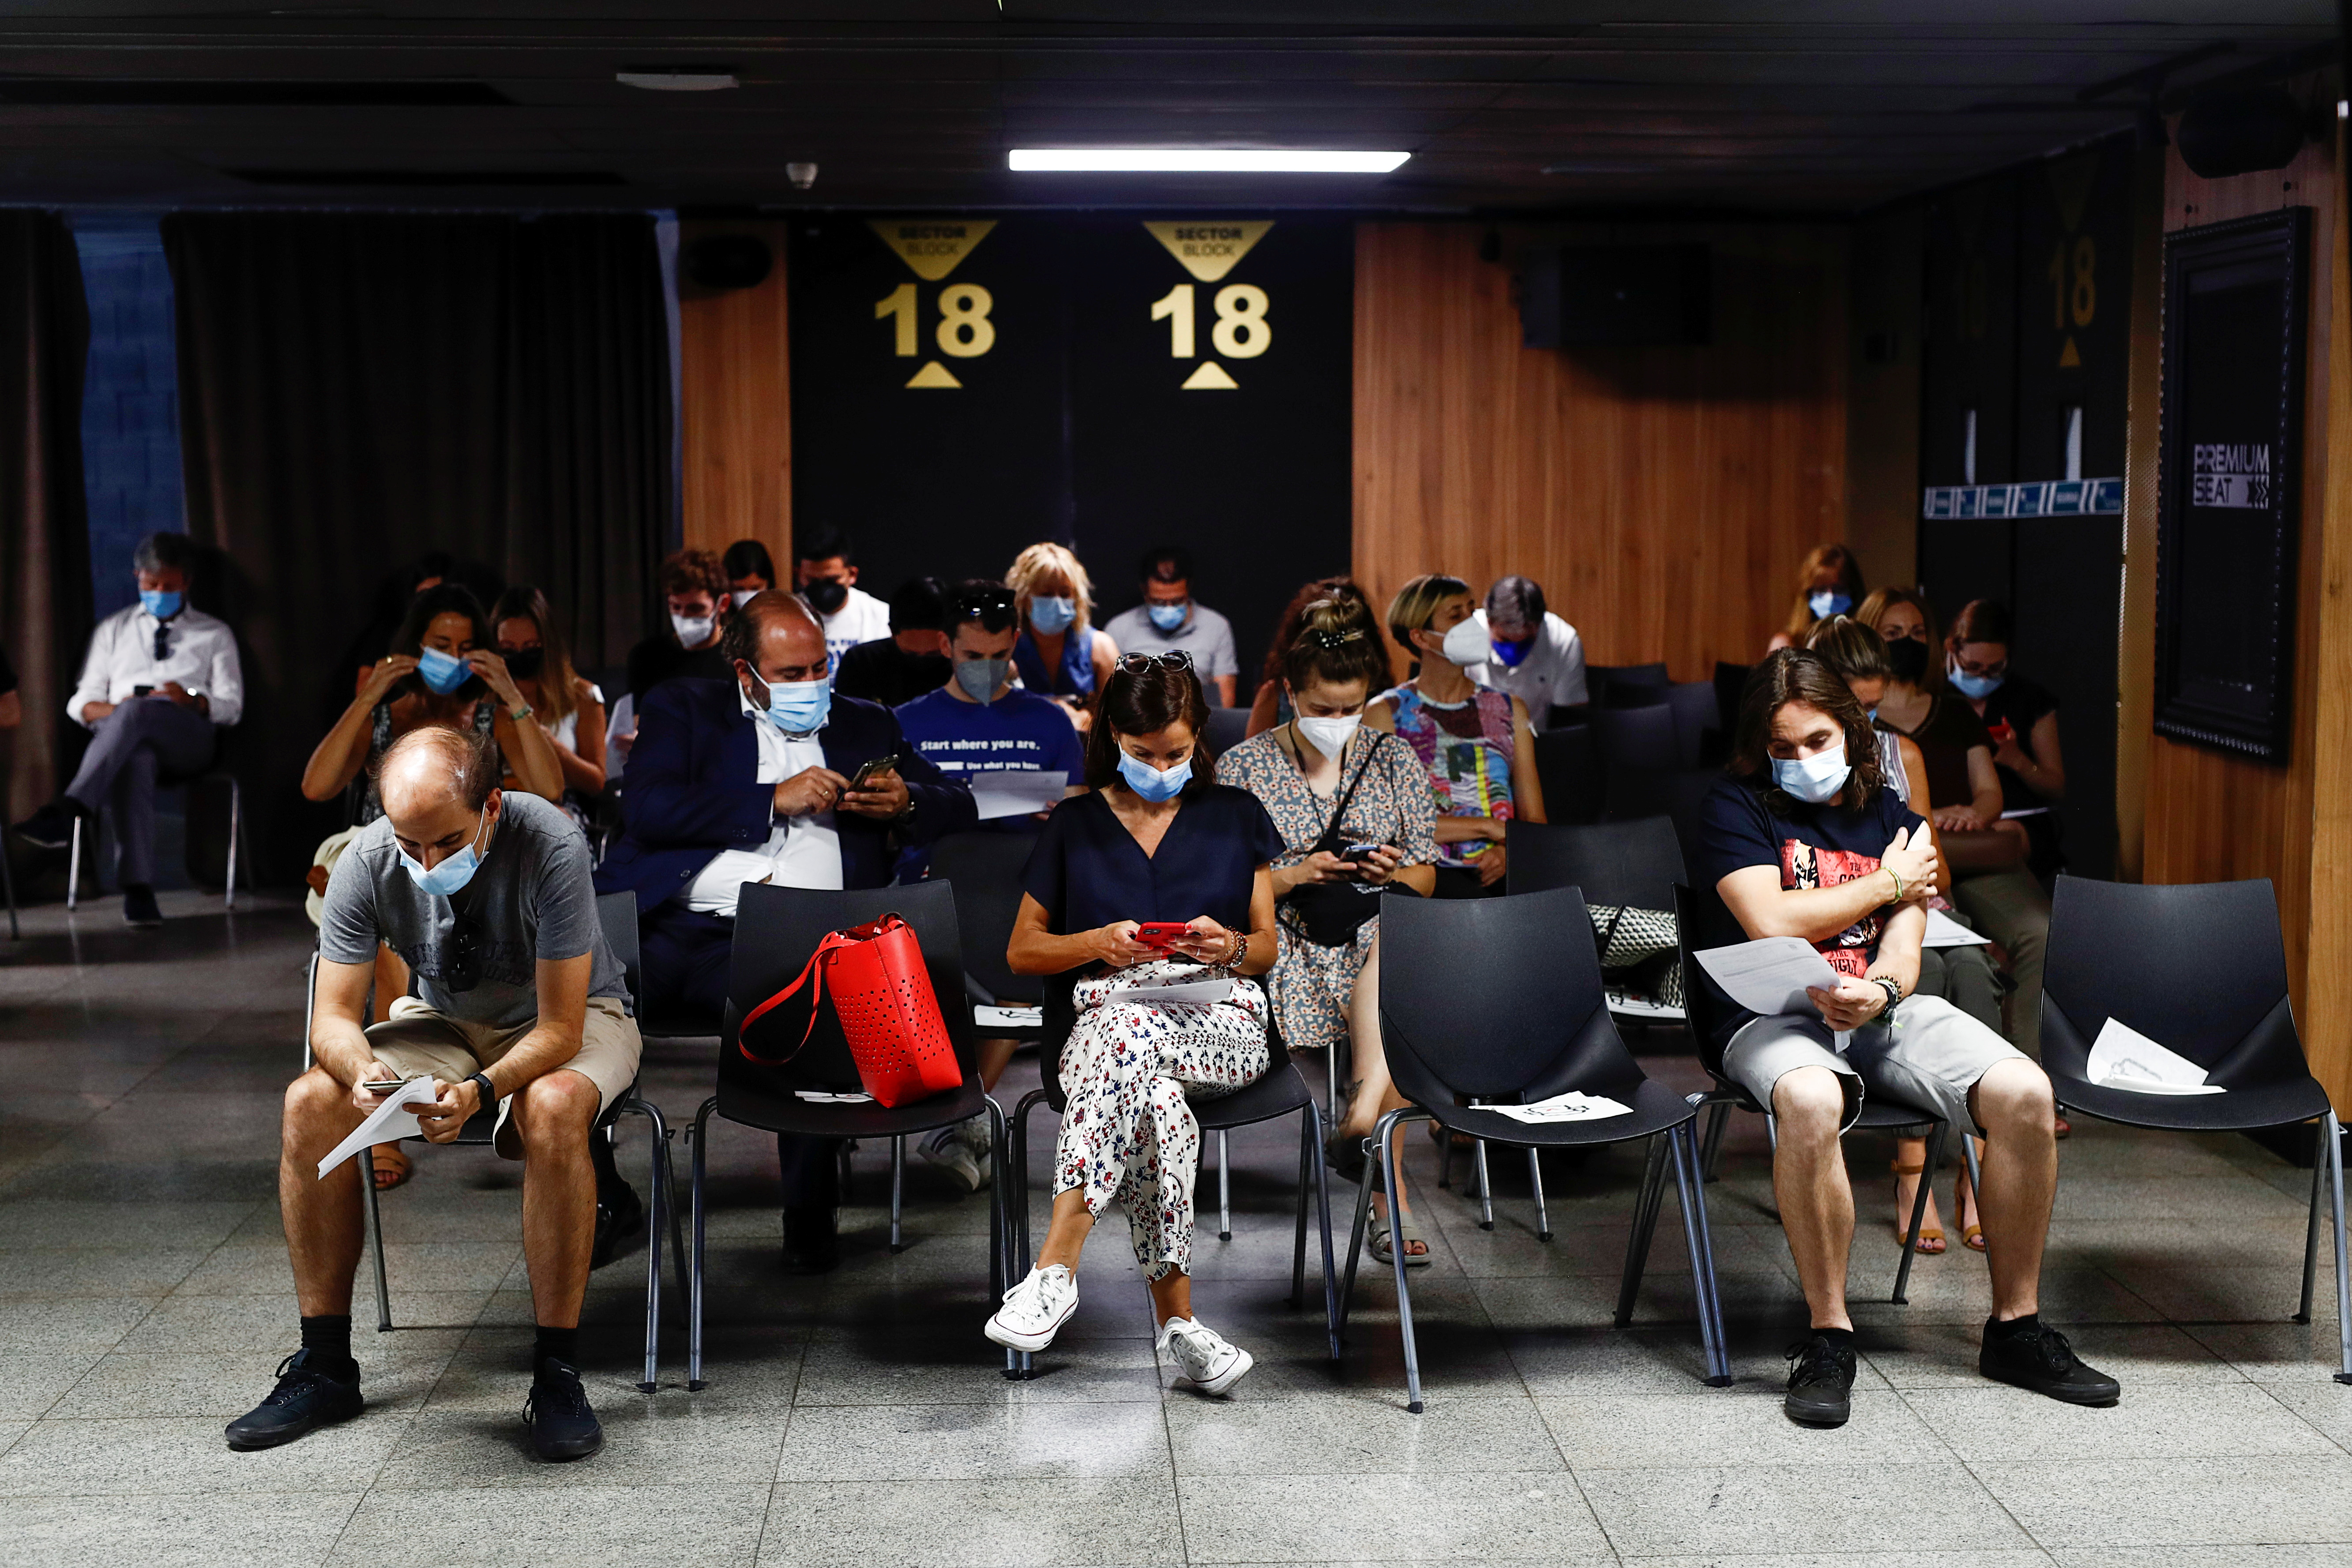 People sit after they received a coronavirus disease (COVID-19) vaccine as the country extends vaccination to curb surge among population under 30, in Madrid, Spain, July 12, 2021. REUTERS/Javier Barbancho